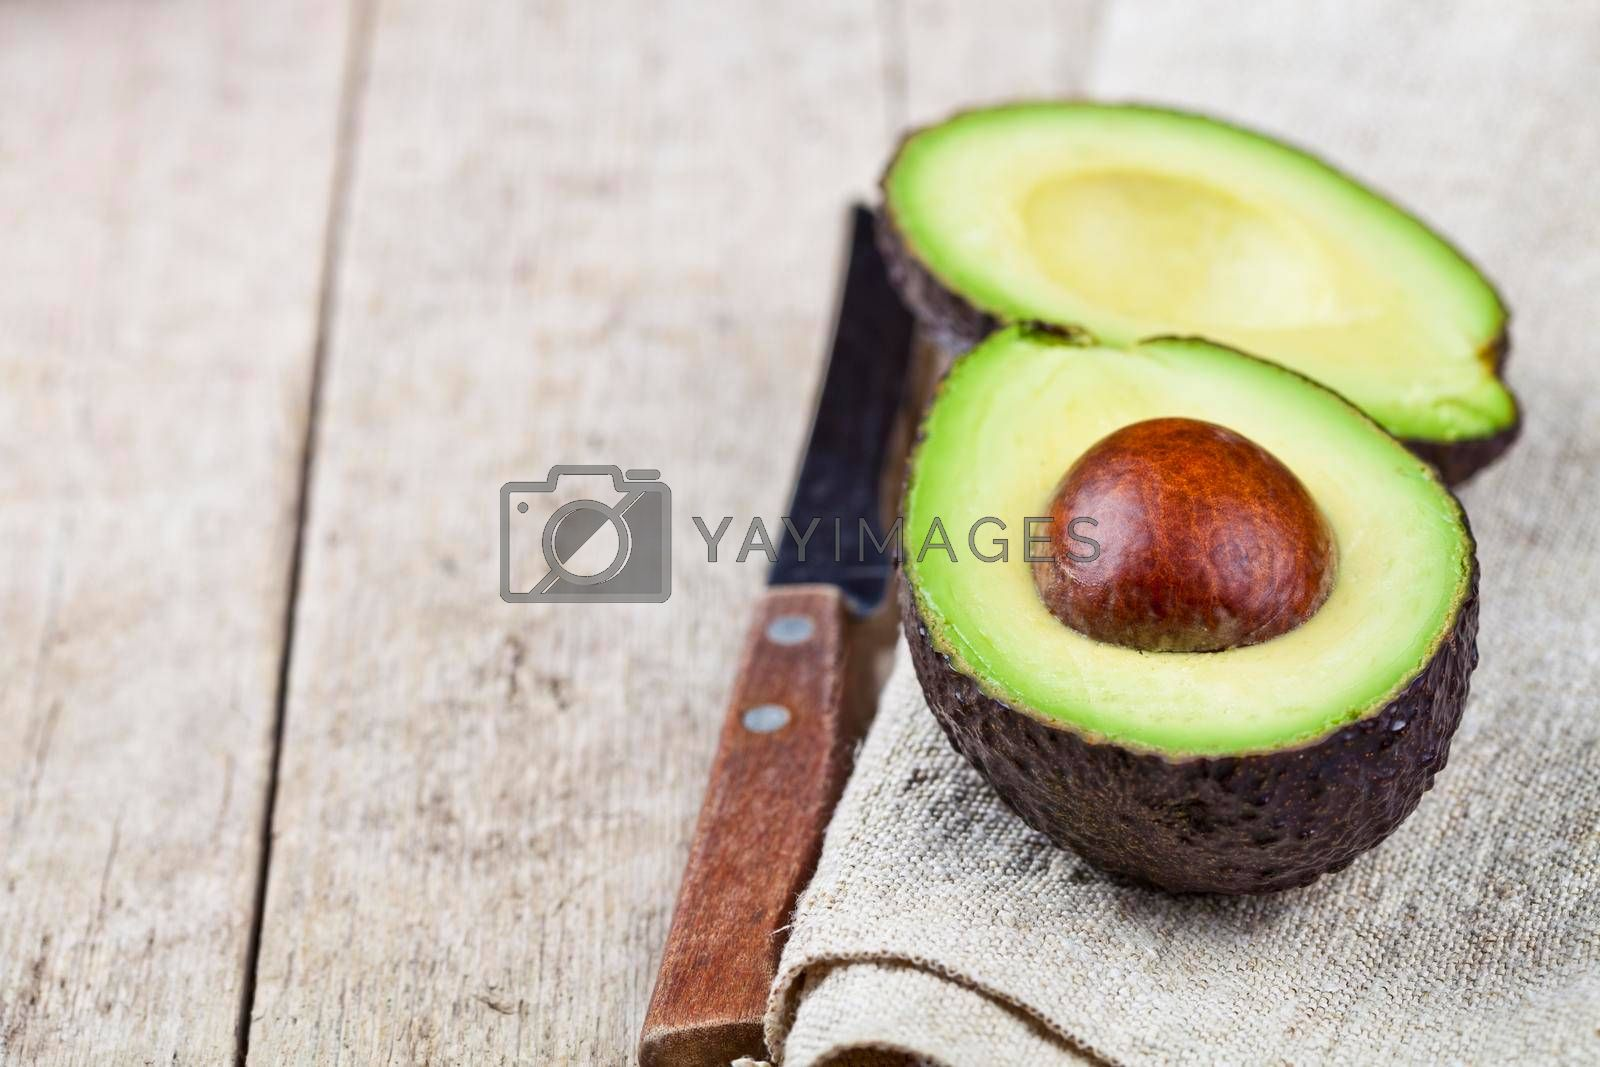 Avocado and knife on linen napkin old wooden table background. Fresh avocado halves on rustic wooden backround with copy space. Healthy food concept.